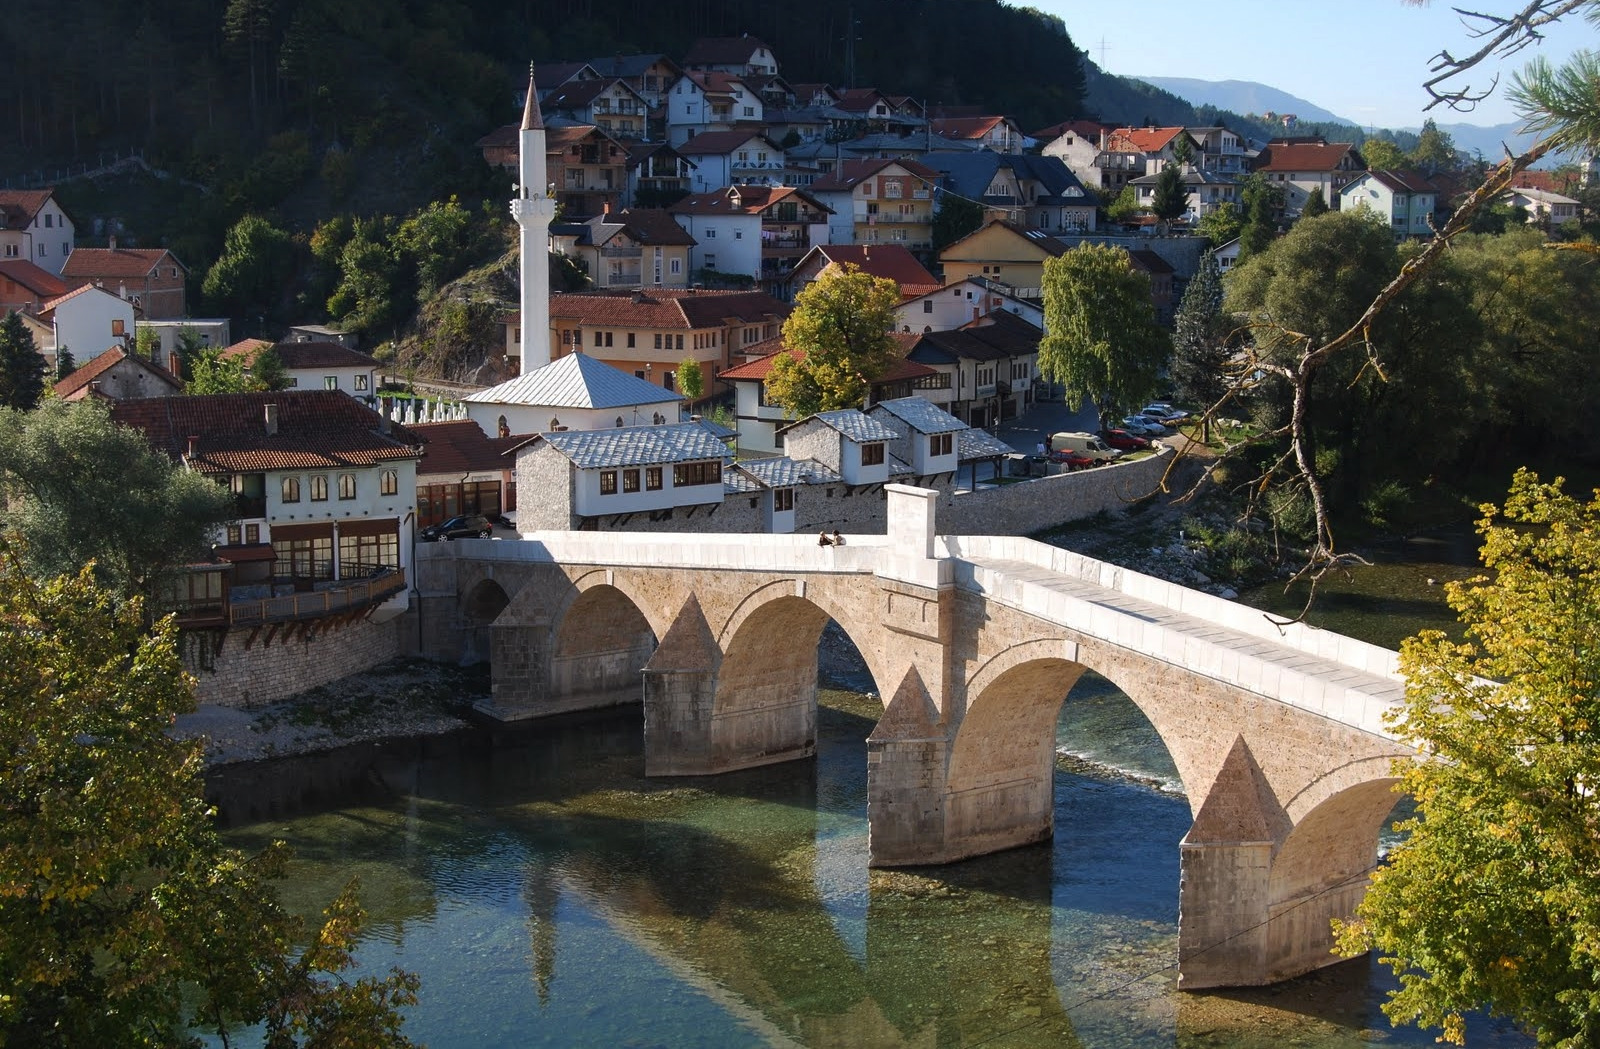 Konjic, Bosnia and Herzegovina - Monterrasol small group tours to Konjic, Bosnia and Herzegovina. Travel agency offers small group car tours to see Konjic in Bosnia and Herzegovina. Order small group tour to Konjic with departure date on request.